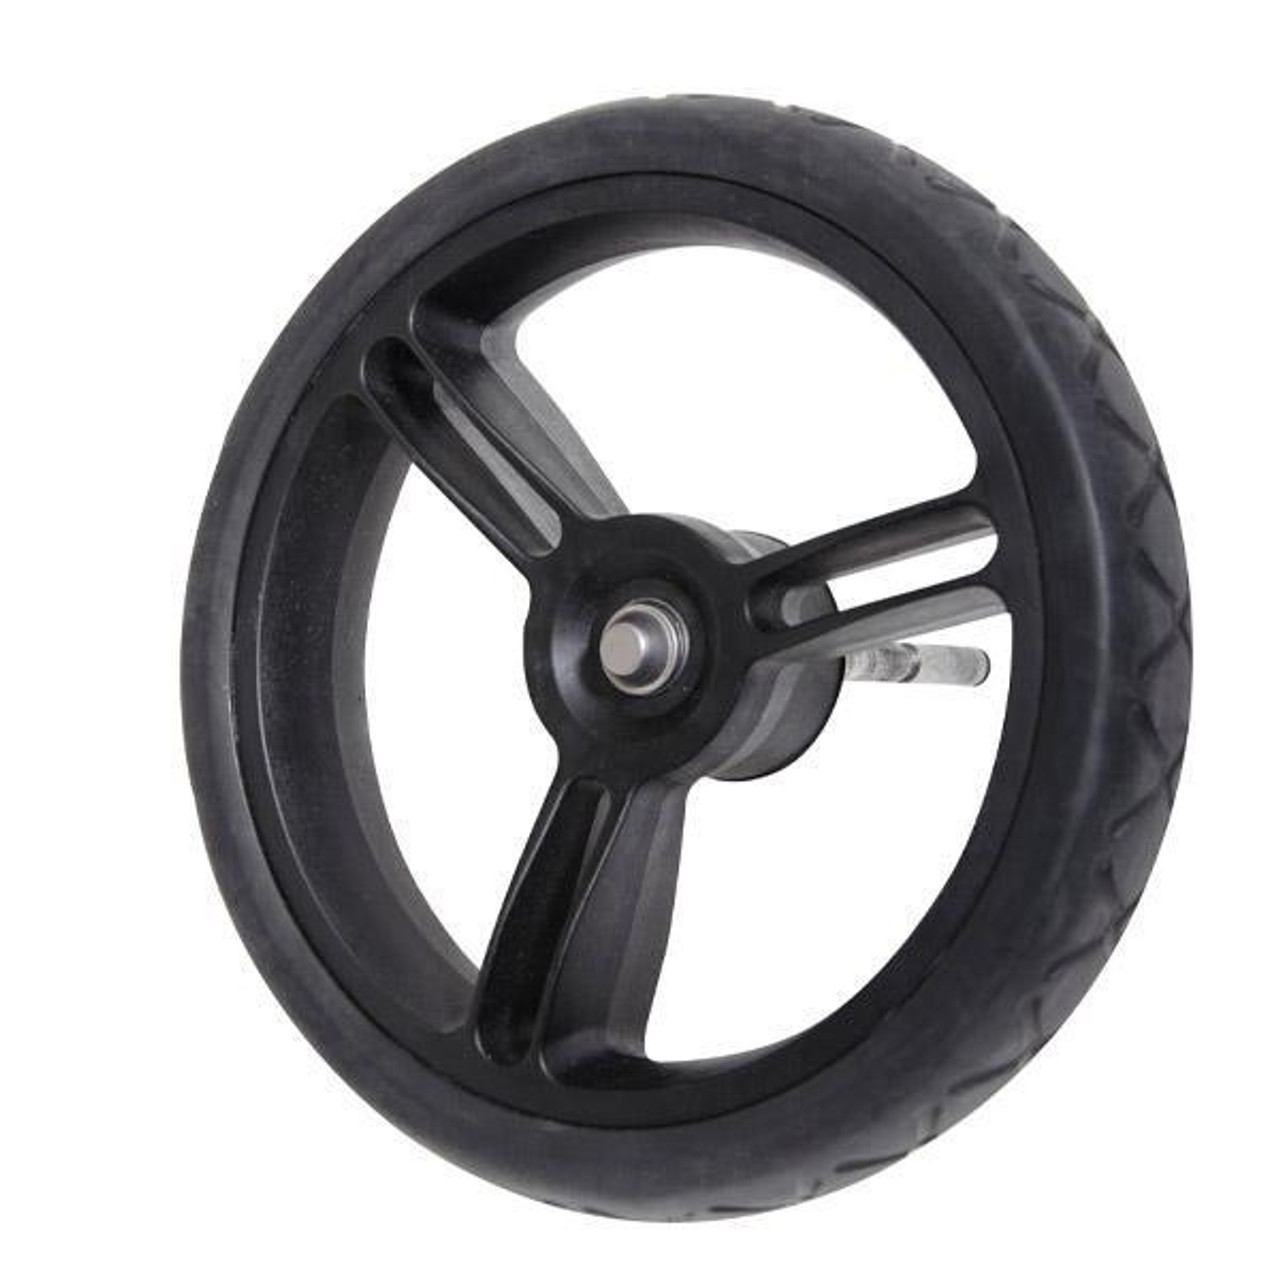 Mountain Buggy Rear Wheel 10 inch Aerotech Wheel fits pre-2017 Swift at Baby Barn Discounts Aerotech rear wheel Replacement spare part for Mountain Buggy pre-2017 Swift.